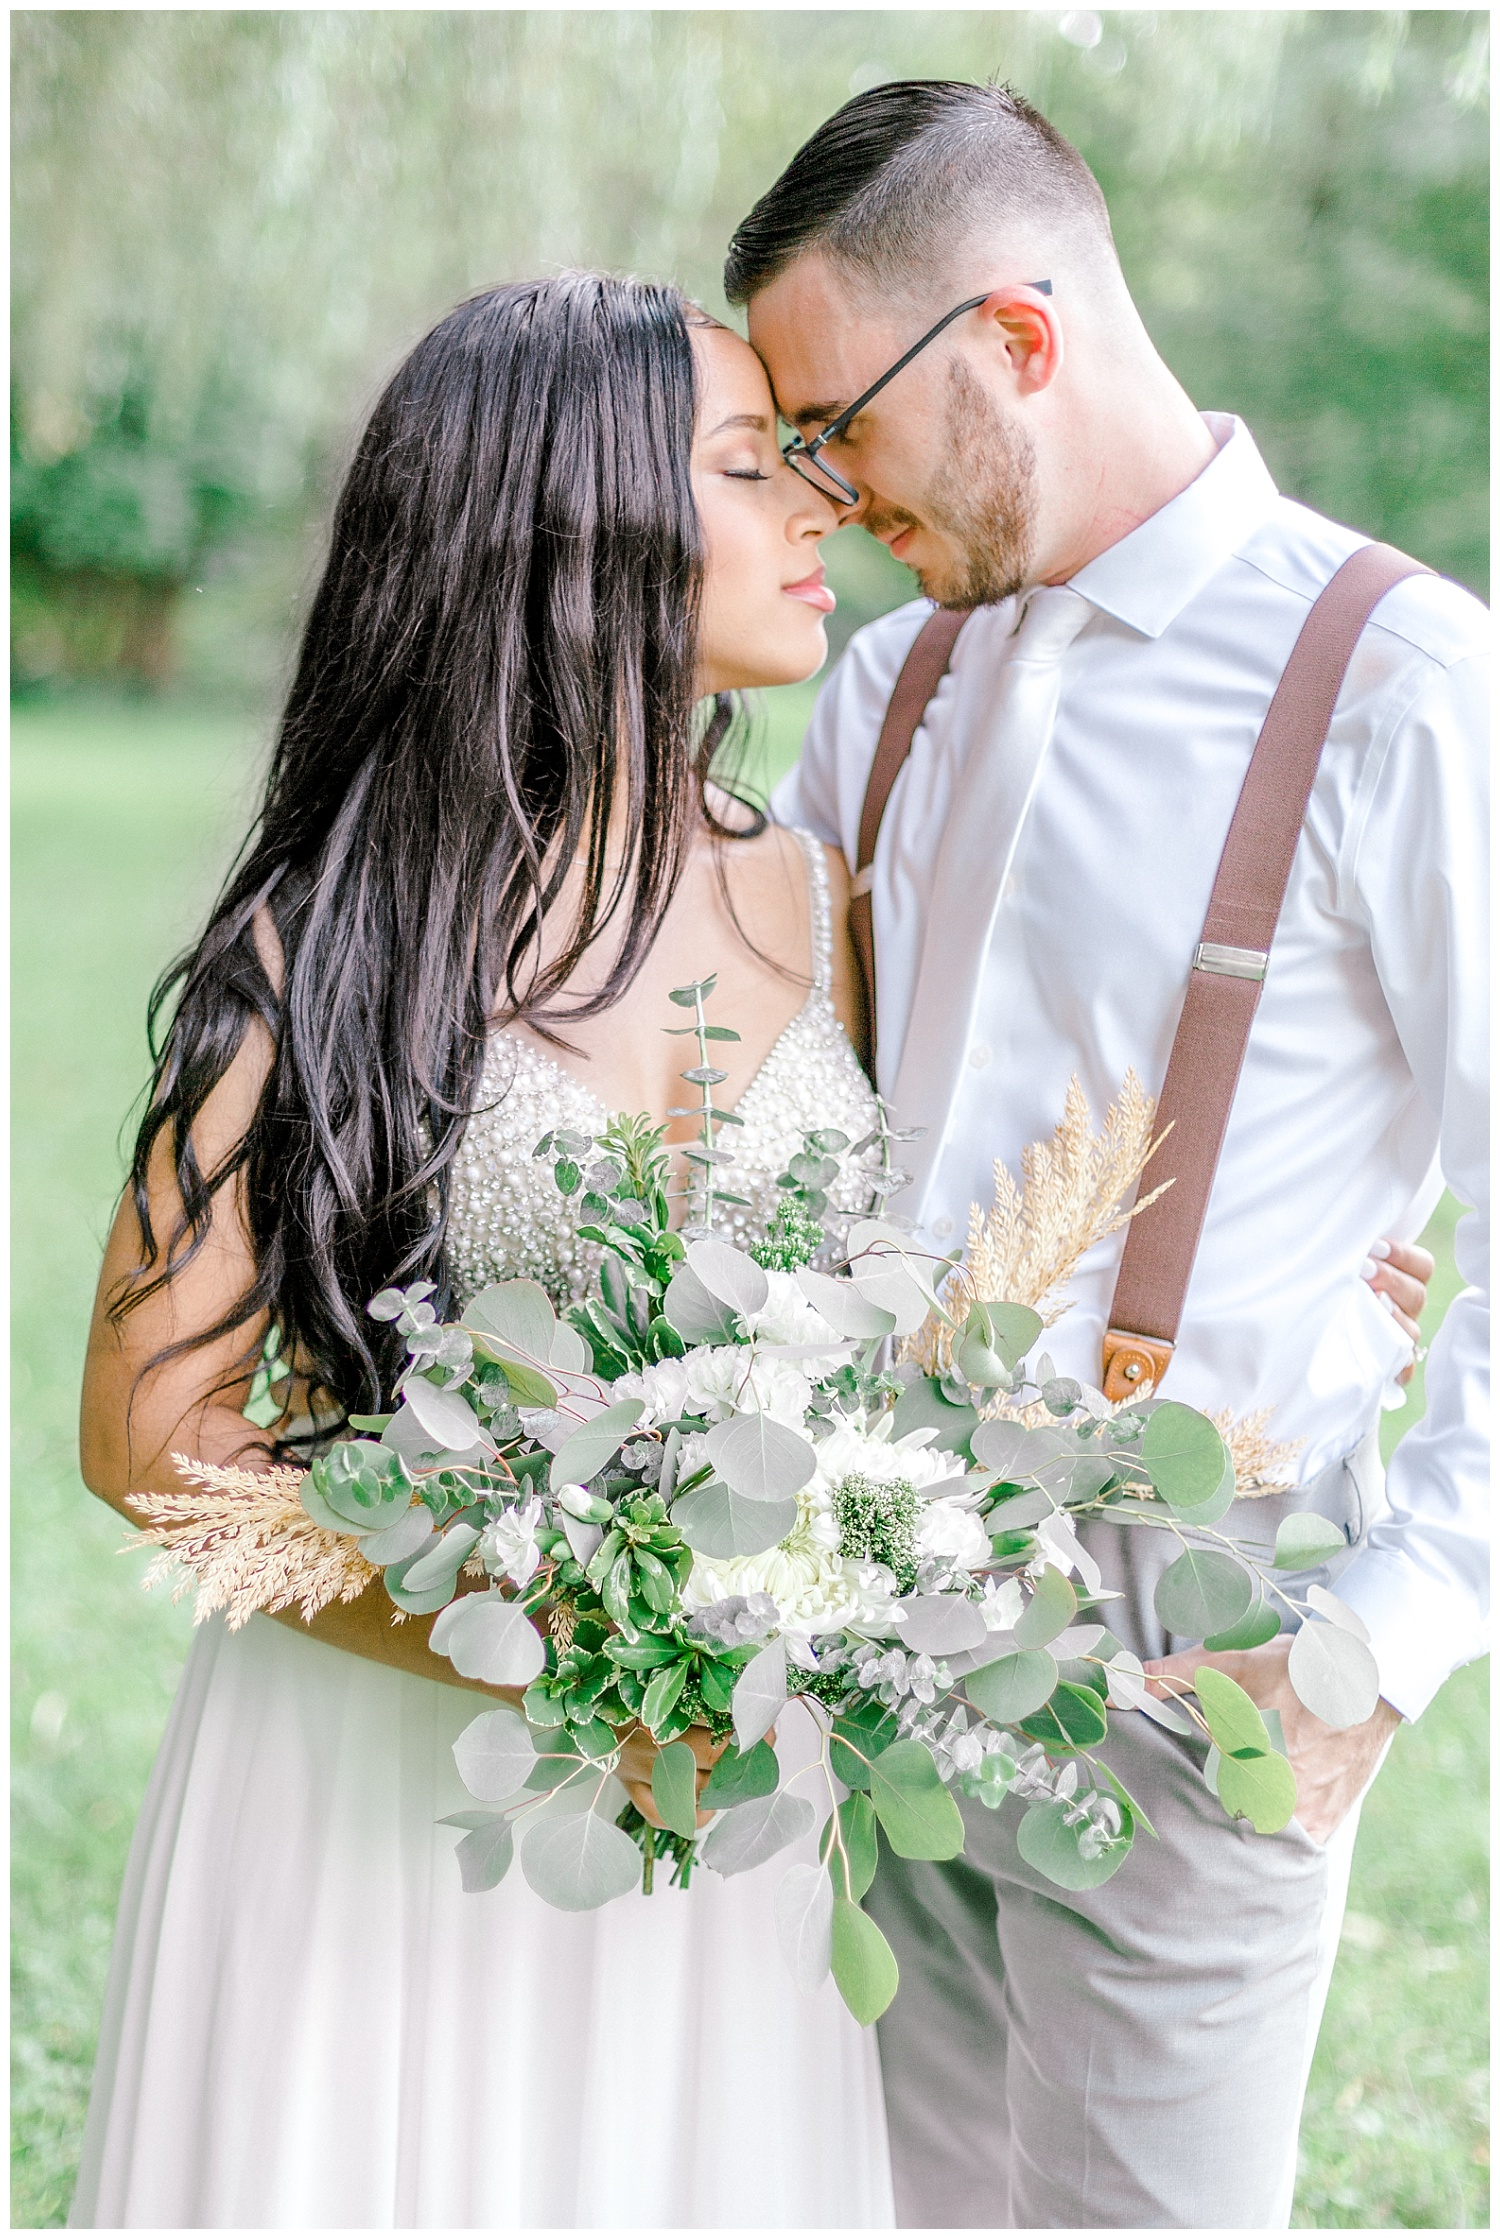 Olive green and white rustic barn wedding at burnside plantation in bethlehem pennsylvania by PA based destination wedding and lifestyle photographer Lytle photography (16).jpg